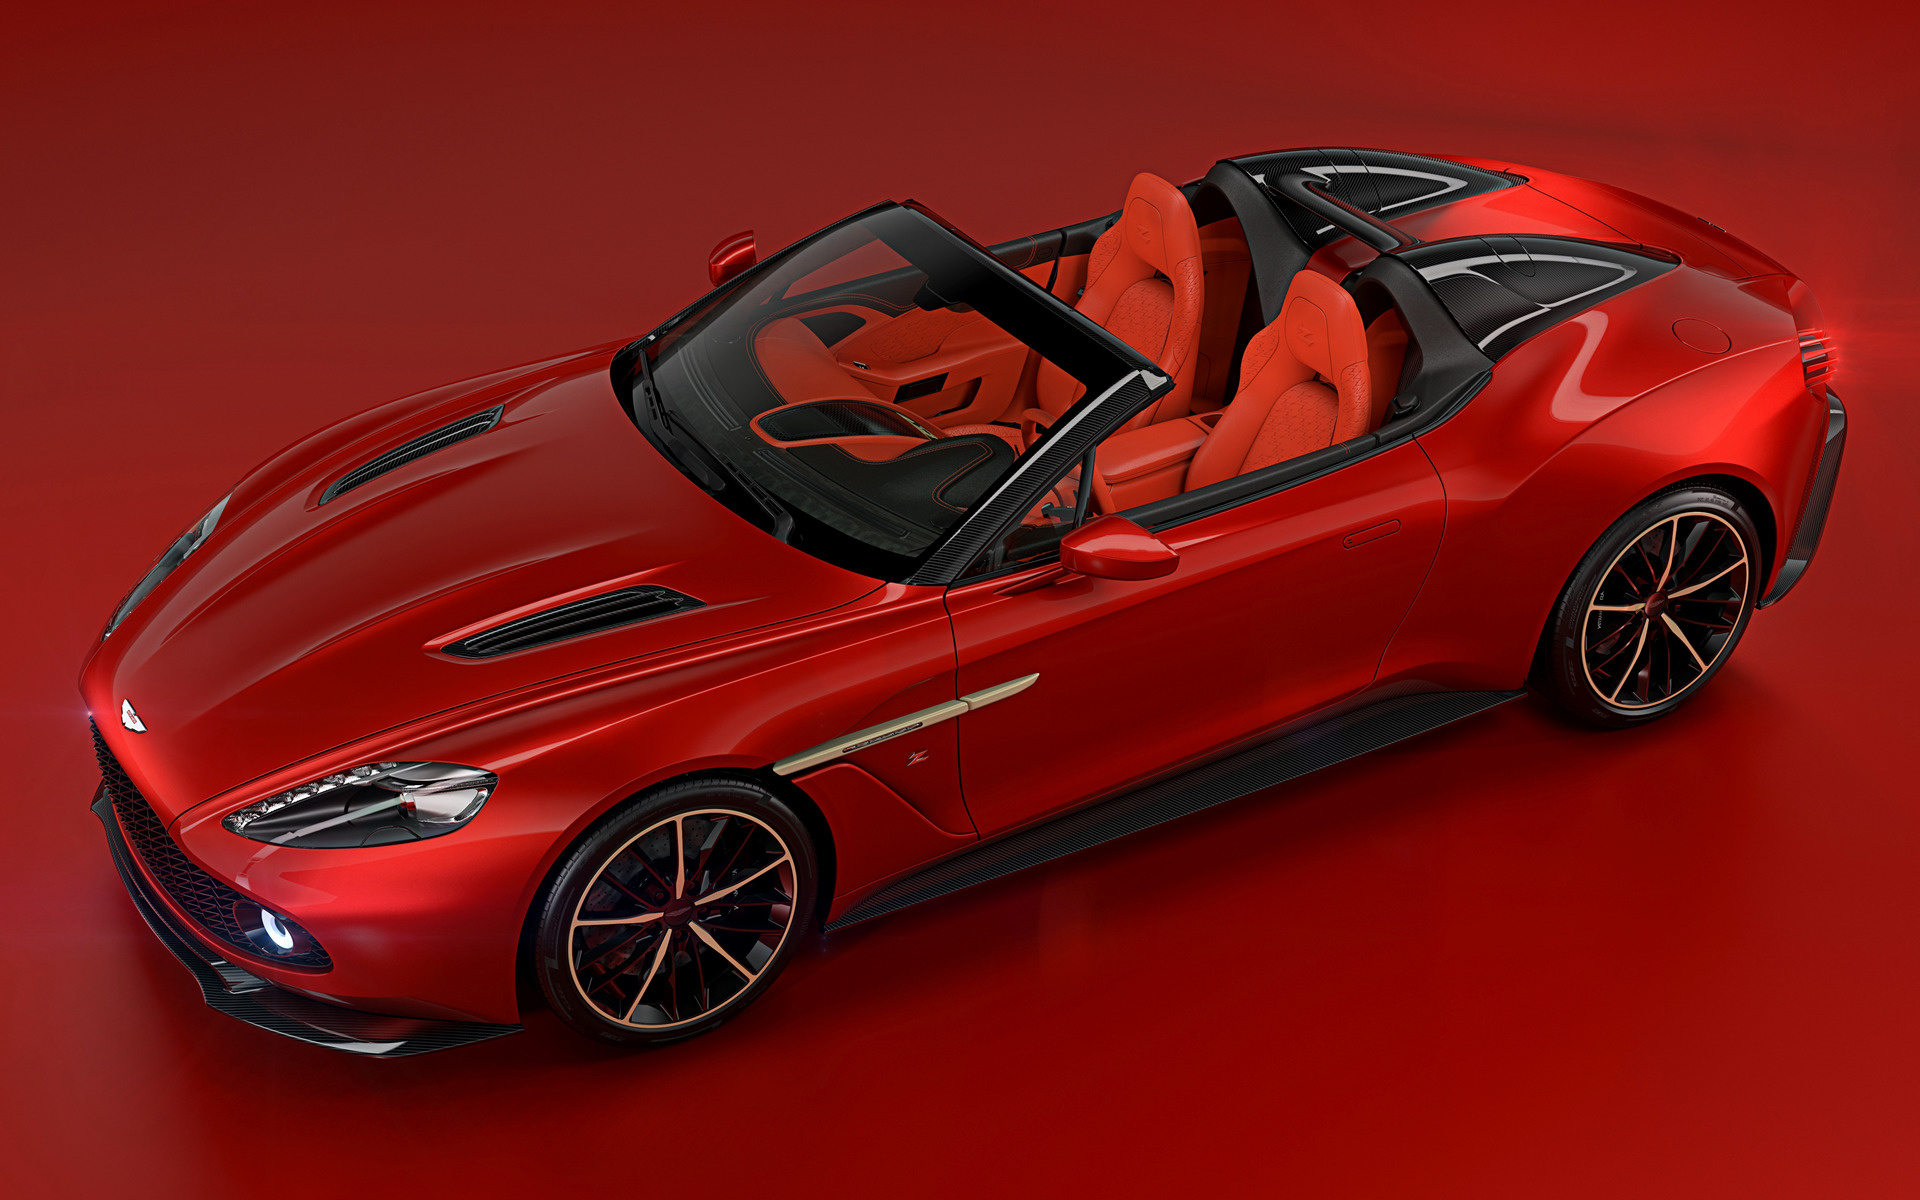 2018 Aston Martin Vanquish Zagato Speedster   Wallpapers and HD 1920x1200